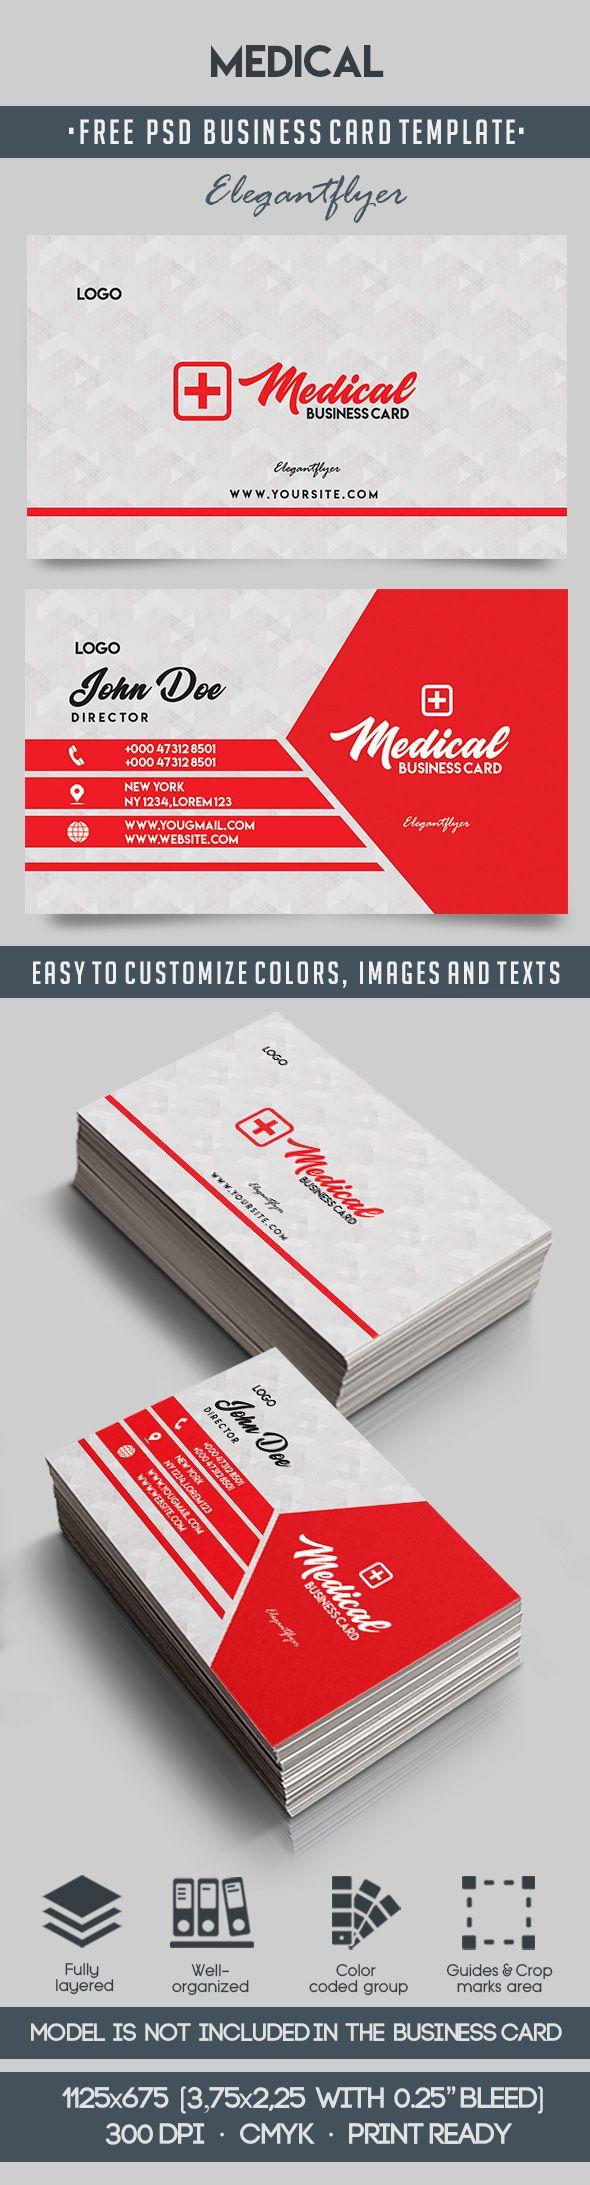 medical � free business card templates psd � by elegantflyer